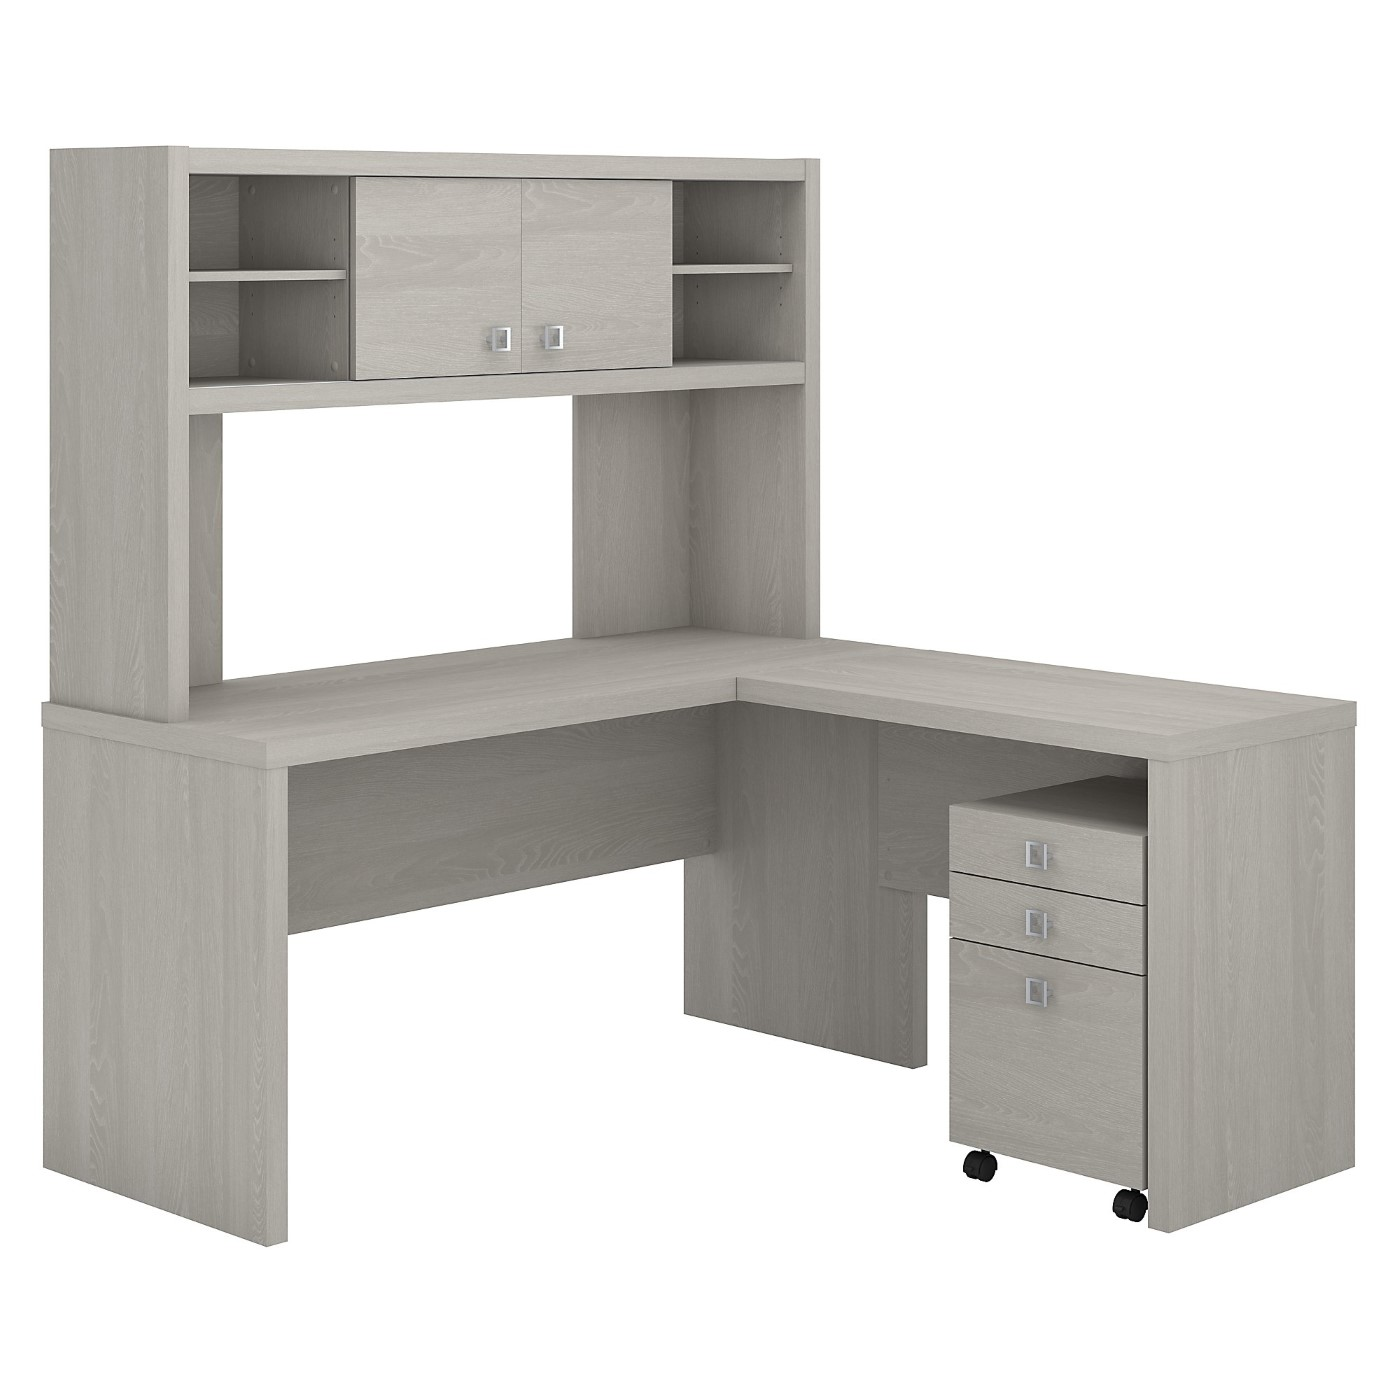 </b></font><b>The kathy ireland� Echo L Shaped Desk with Hutch and Mobile File Cabinet is Sustainable Eco Friendly Furniture. Includes Free Shipping! 30H x 72L x 72W</font>. <p>RATING:&#11088;&#11088;&#11088;&#11088;&#11088;</b></font></b>